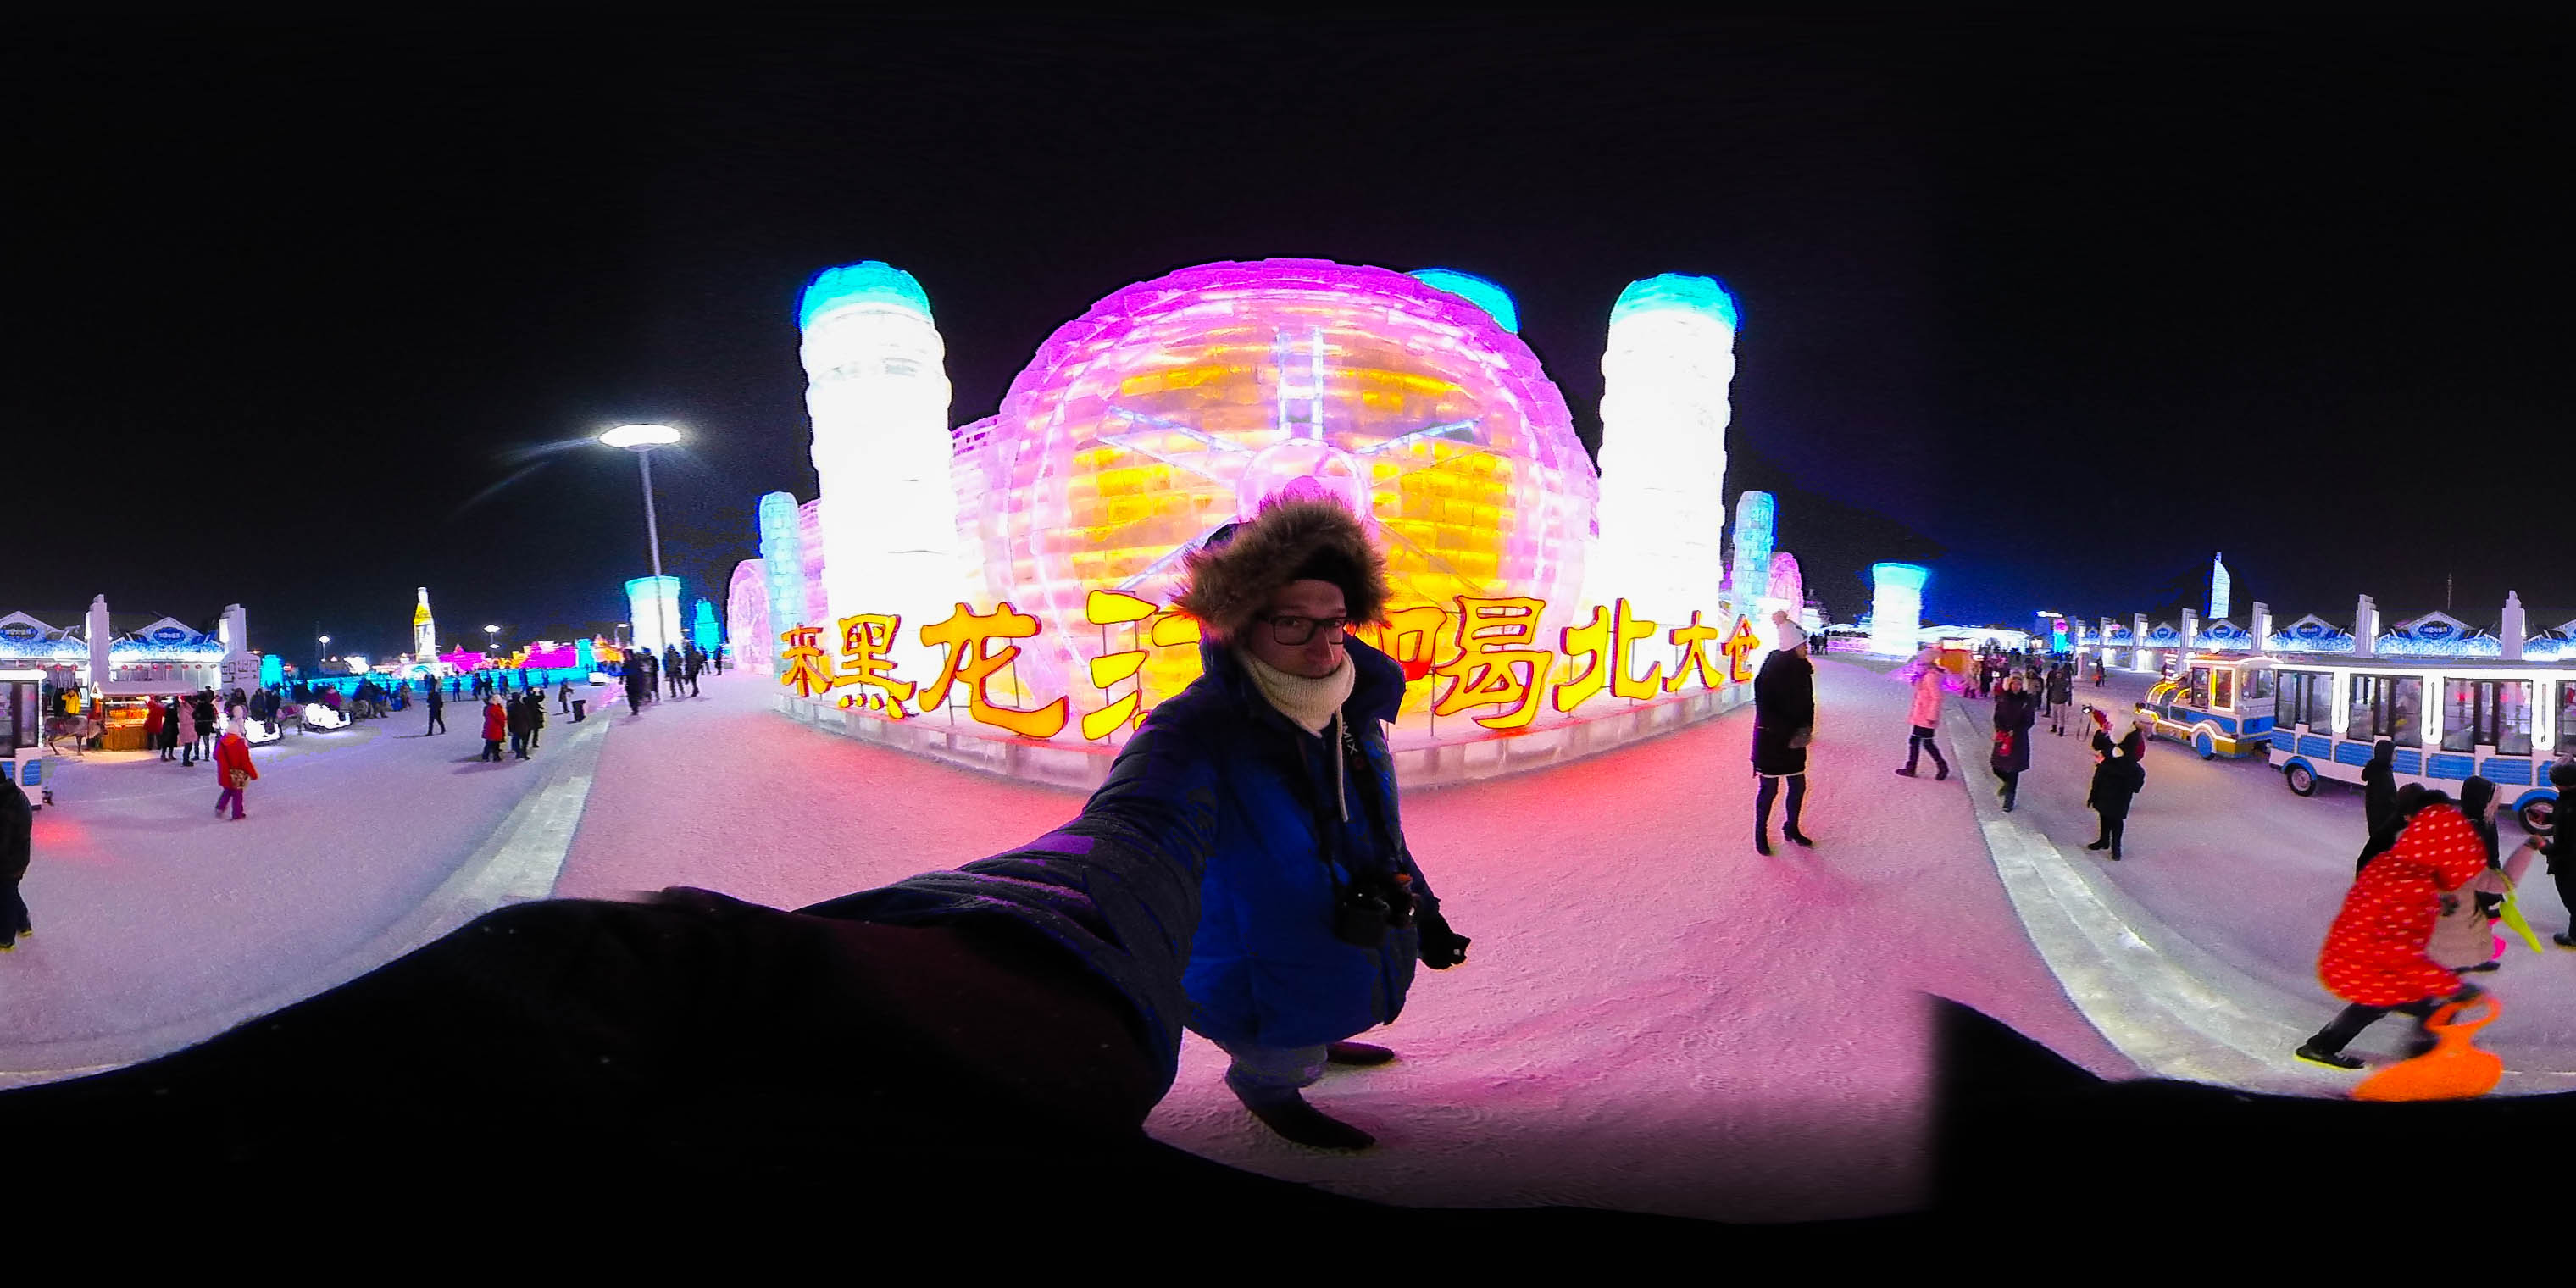 The entrance of the Harbin Snow and Ice World.